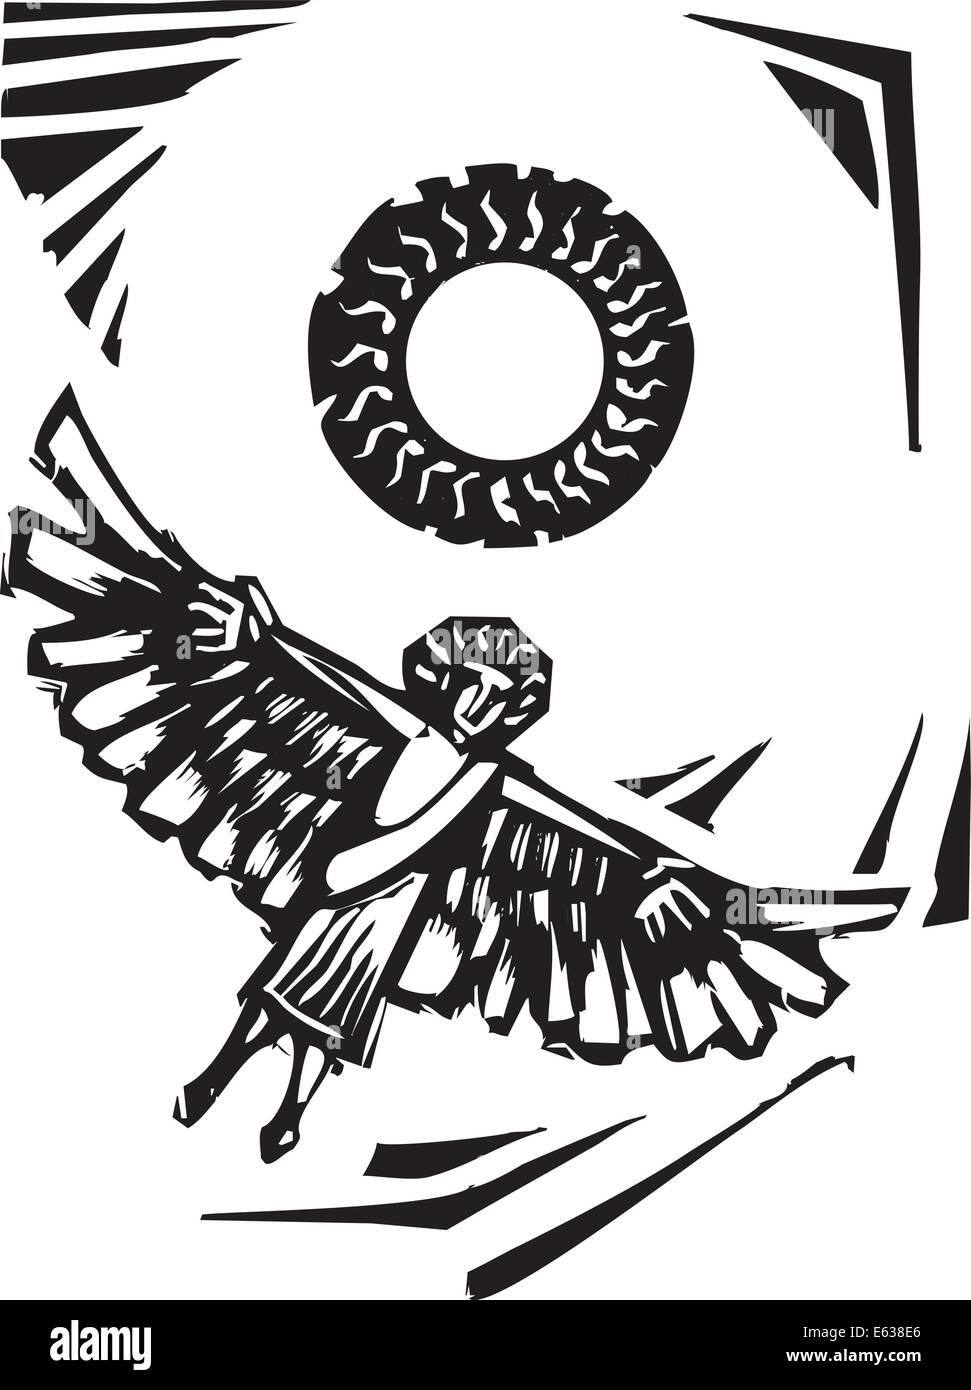 Greek myth of winged Icarus getting to close to the sun. - Stock Image